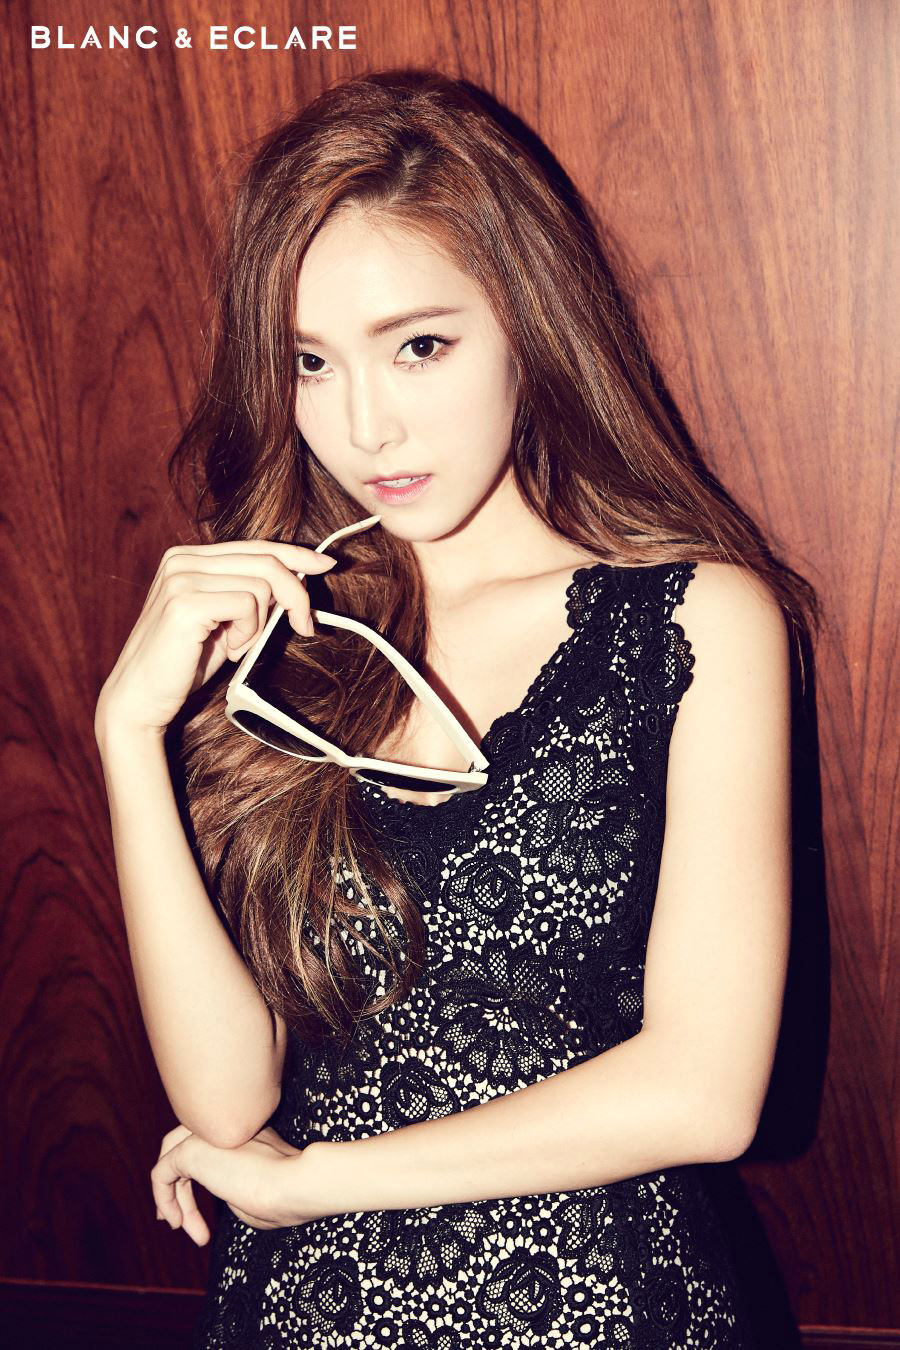 SNSD Jessica BLANC and ECLARE fashion brand